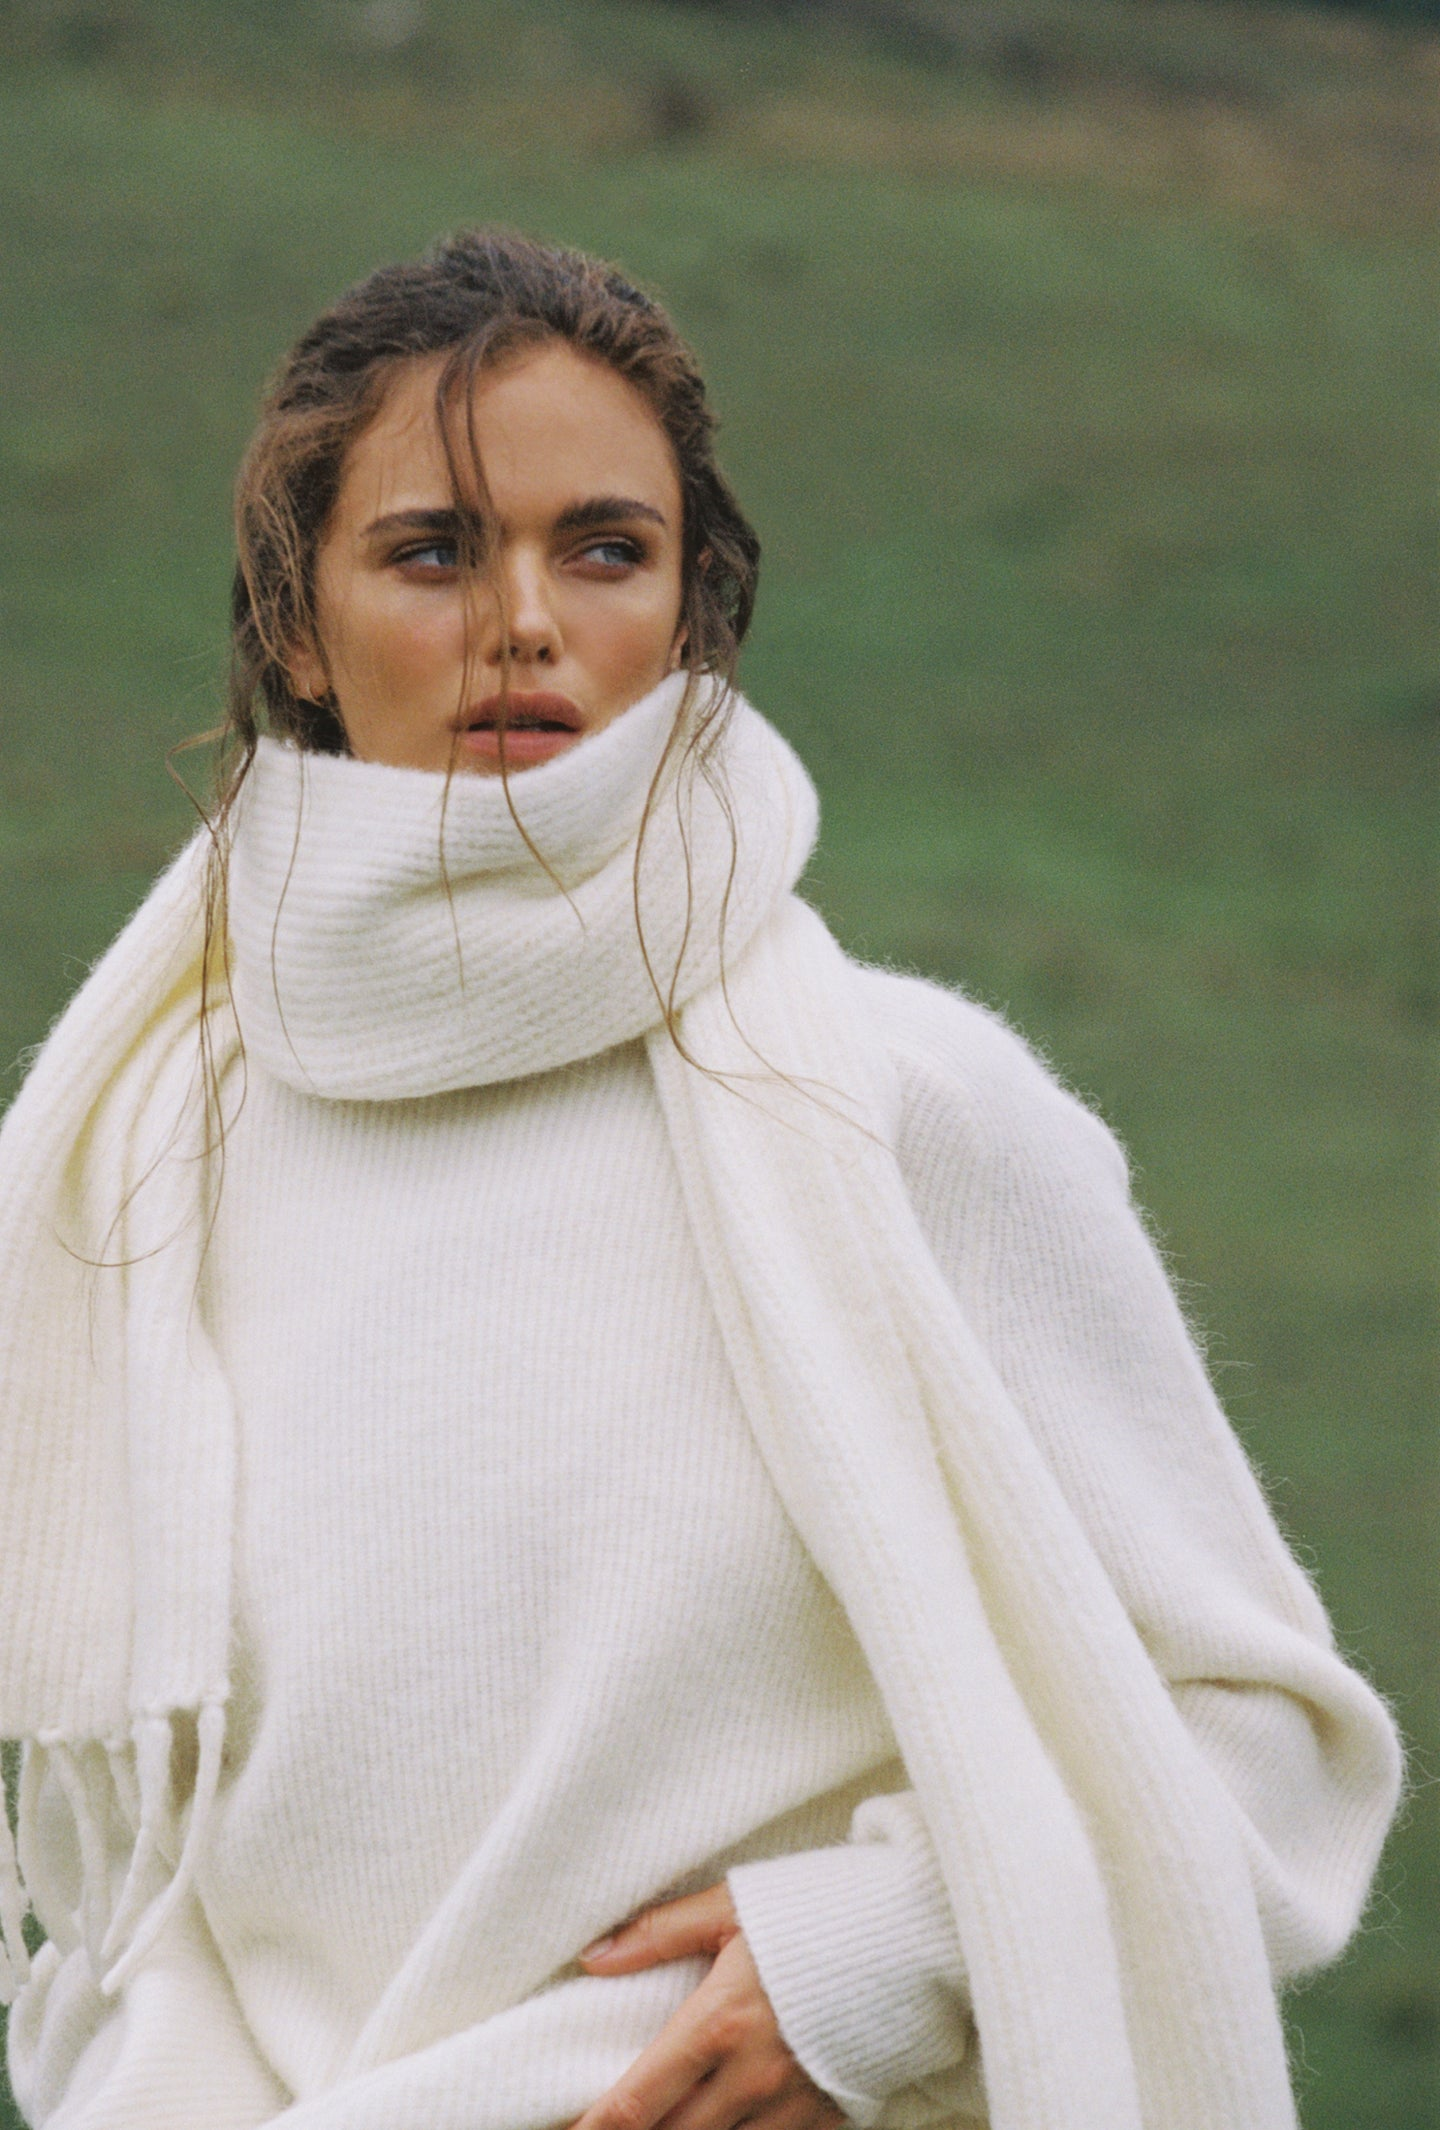 SIR the label FRANCA OVERSIZED SWEATER IVORY